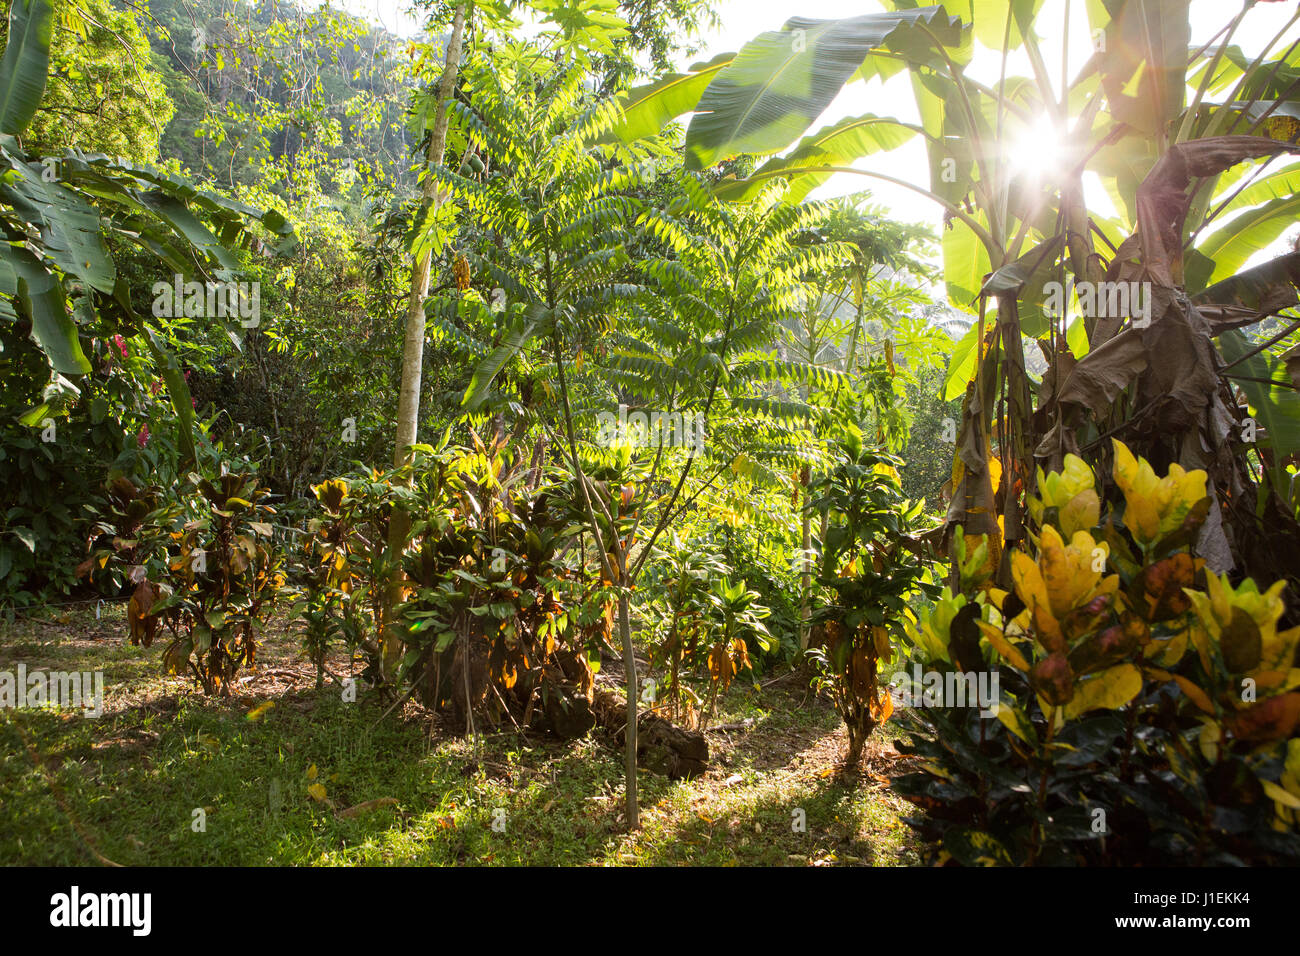 The sun bursts through vegetation located in the tropical botanical gardens at Casa Orquideas. - Stock Image